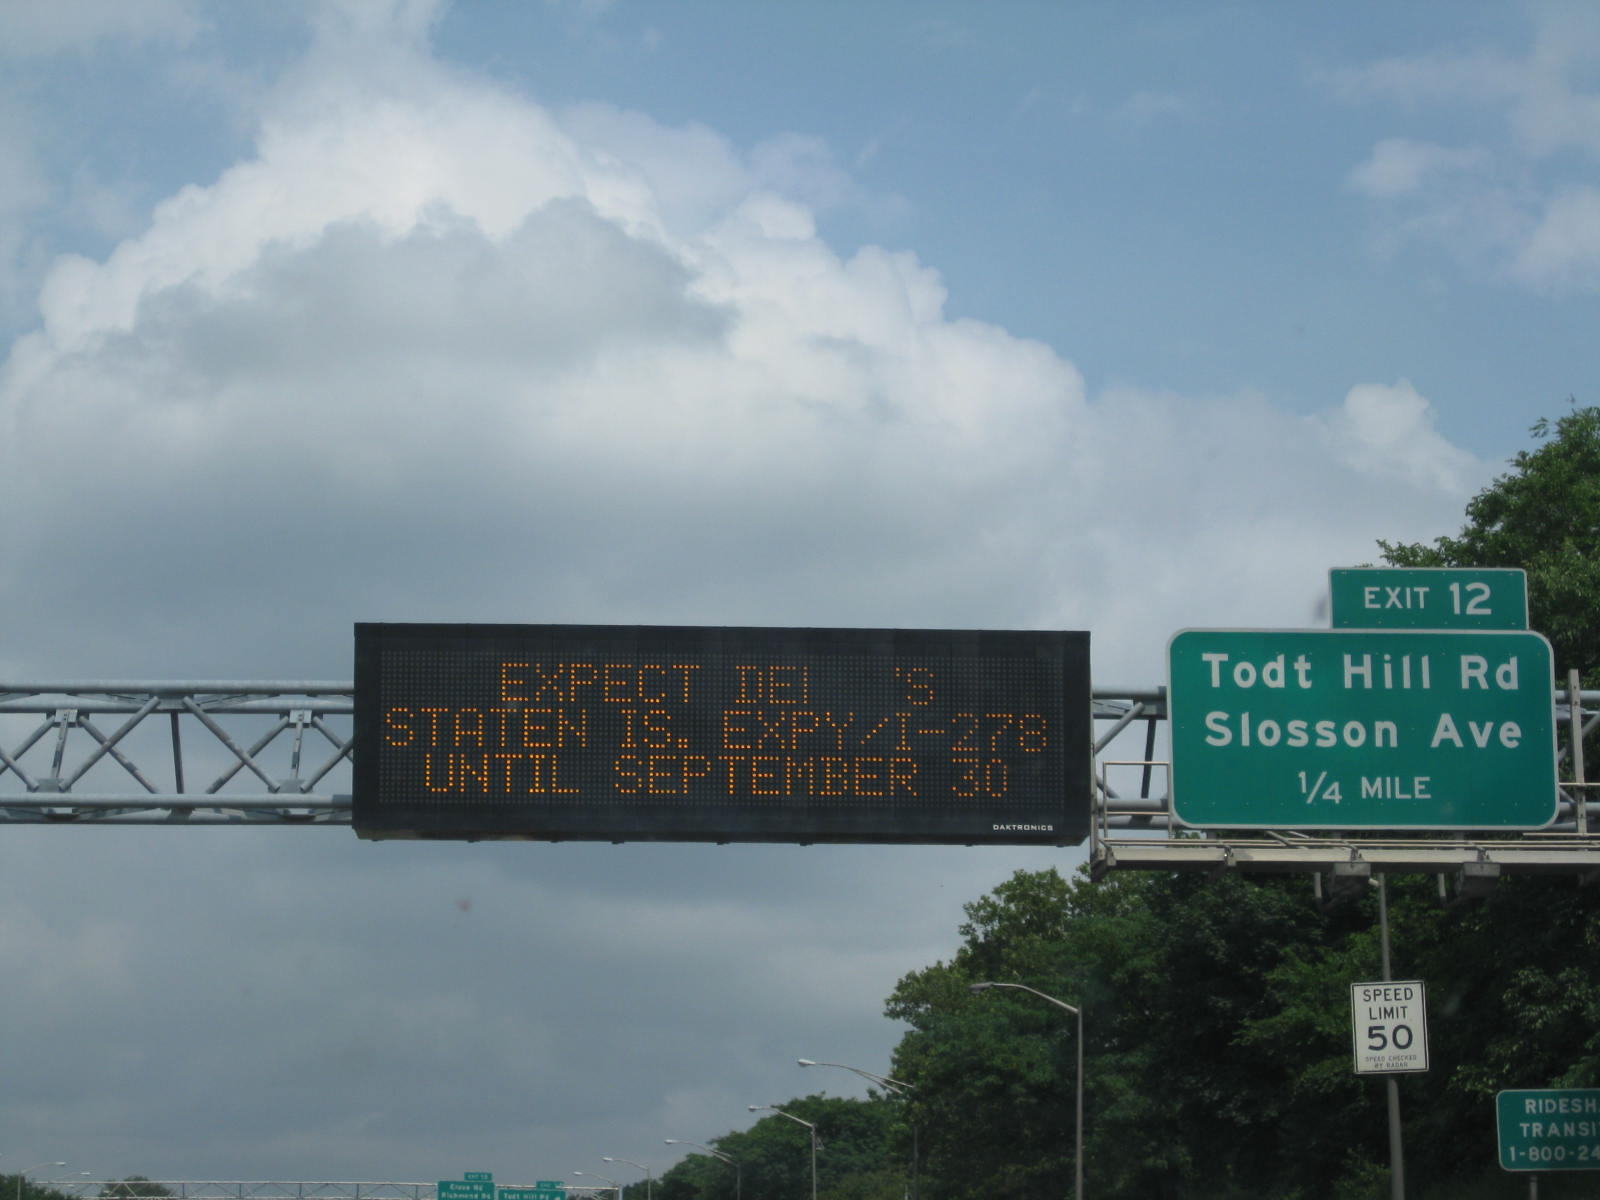 """Expect delays until September."" Classic Staten Island, NY."